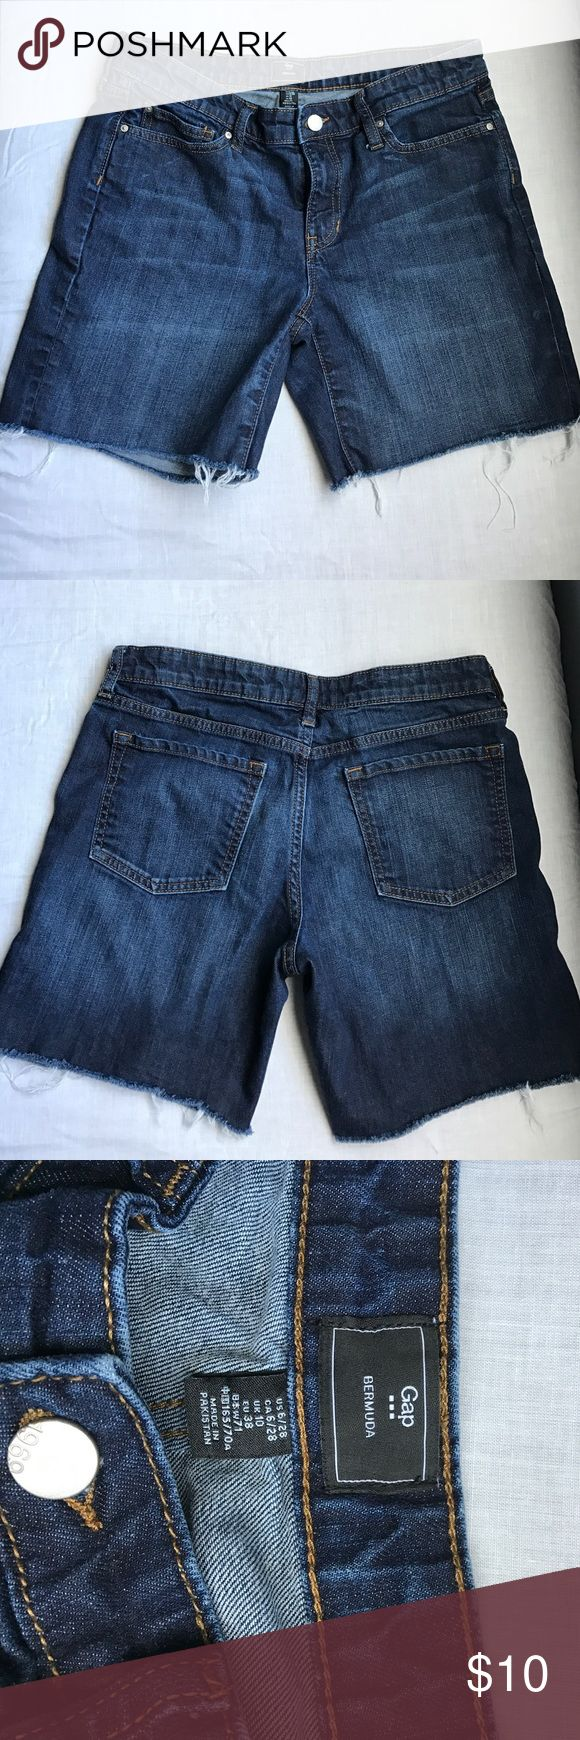 Gap Bermuda denim shorts Dark wash Gap Bermuda style denim cut off shorts. Excellent condition no rips or stains. Fraying at bottom is natural to the design. GAP Shorts